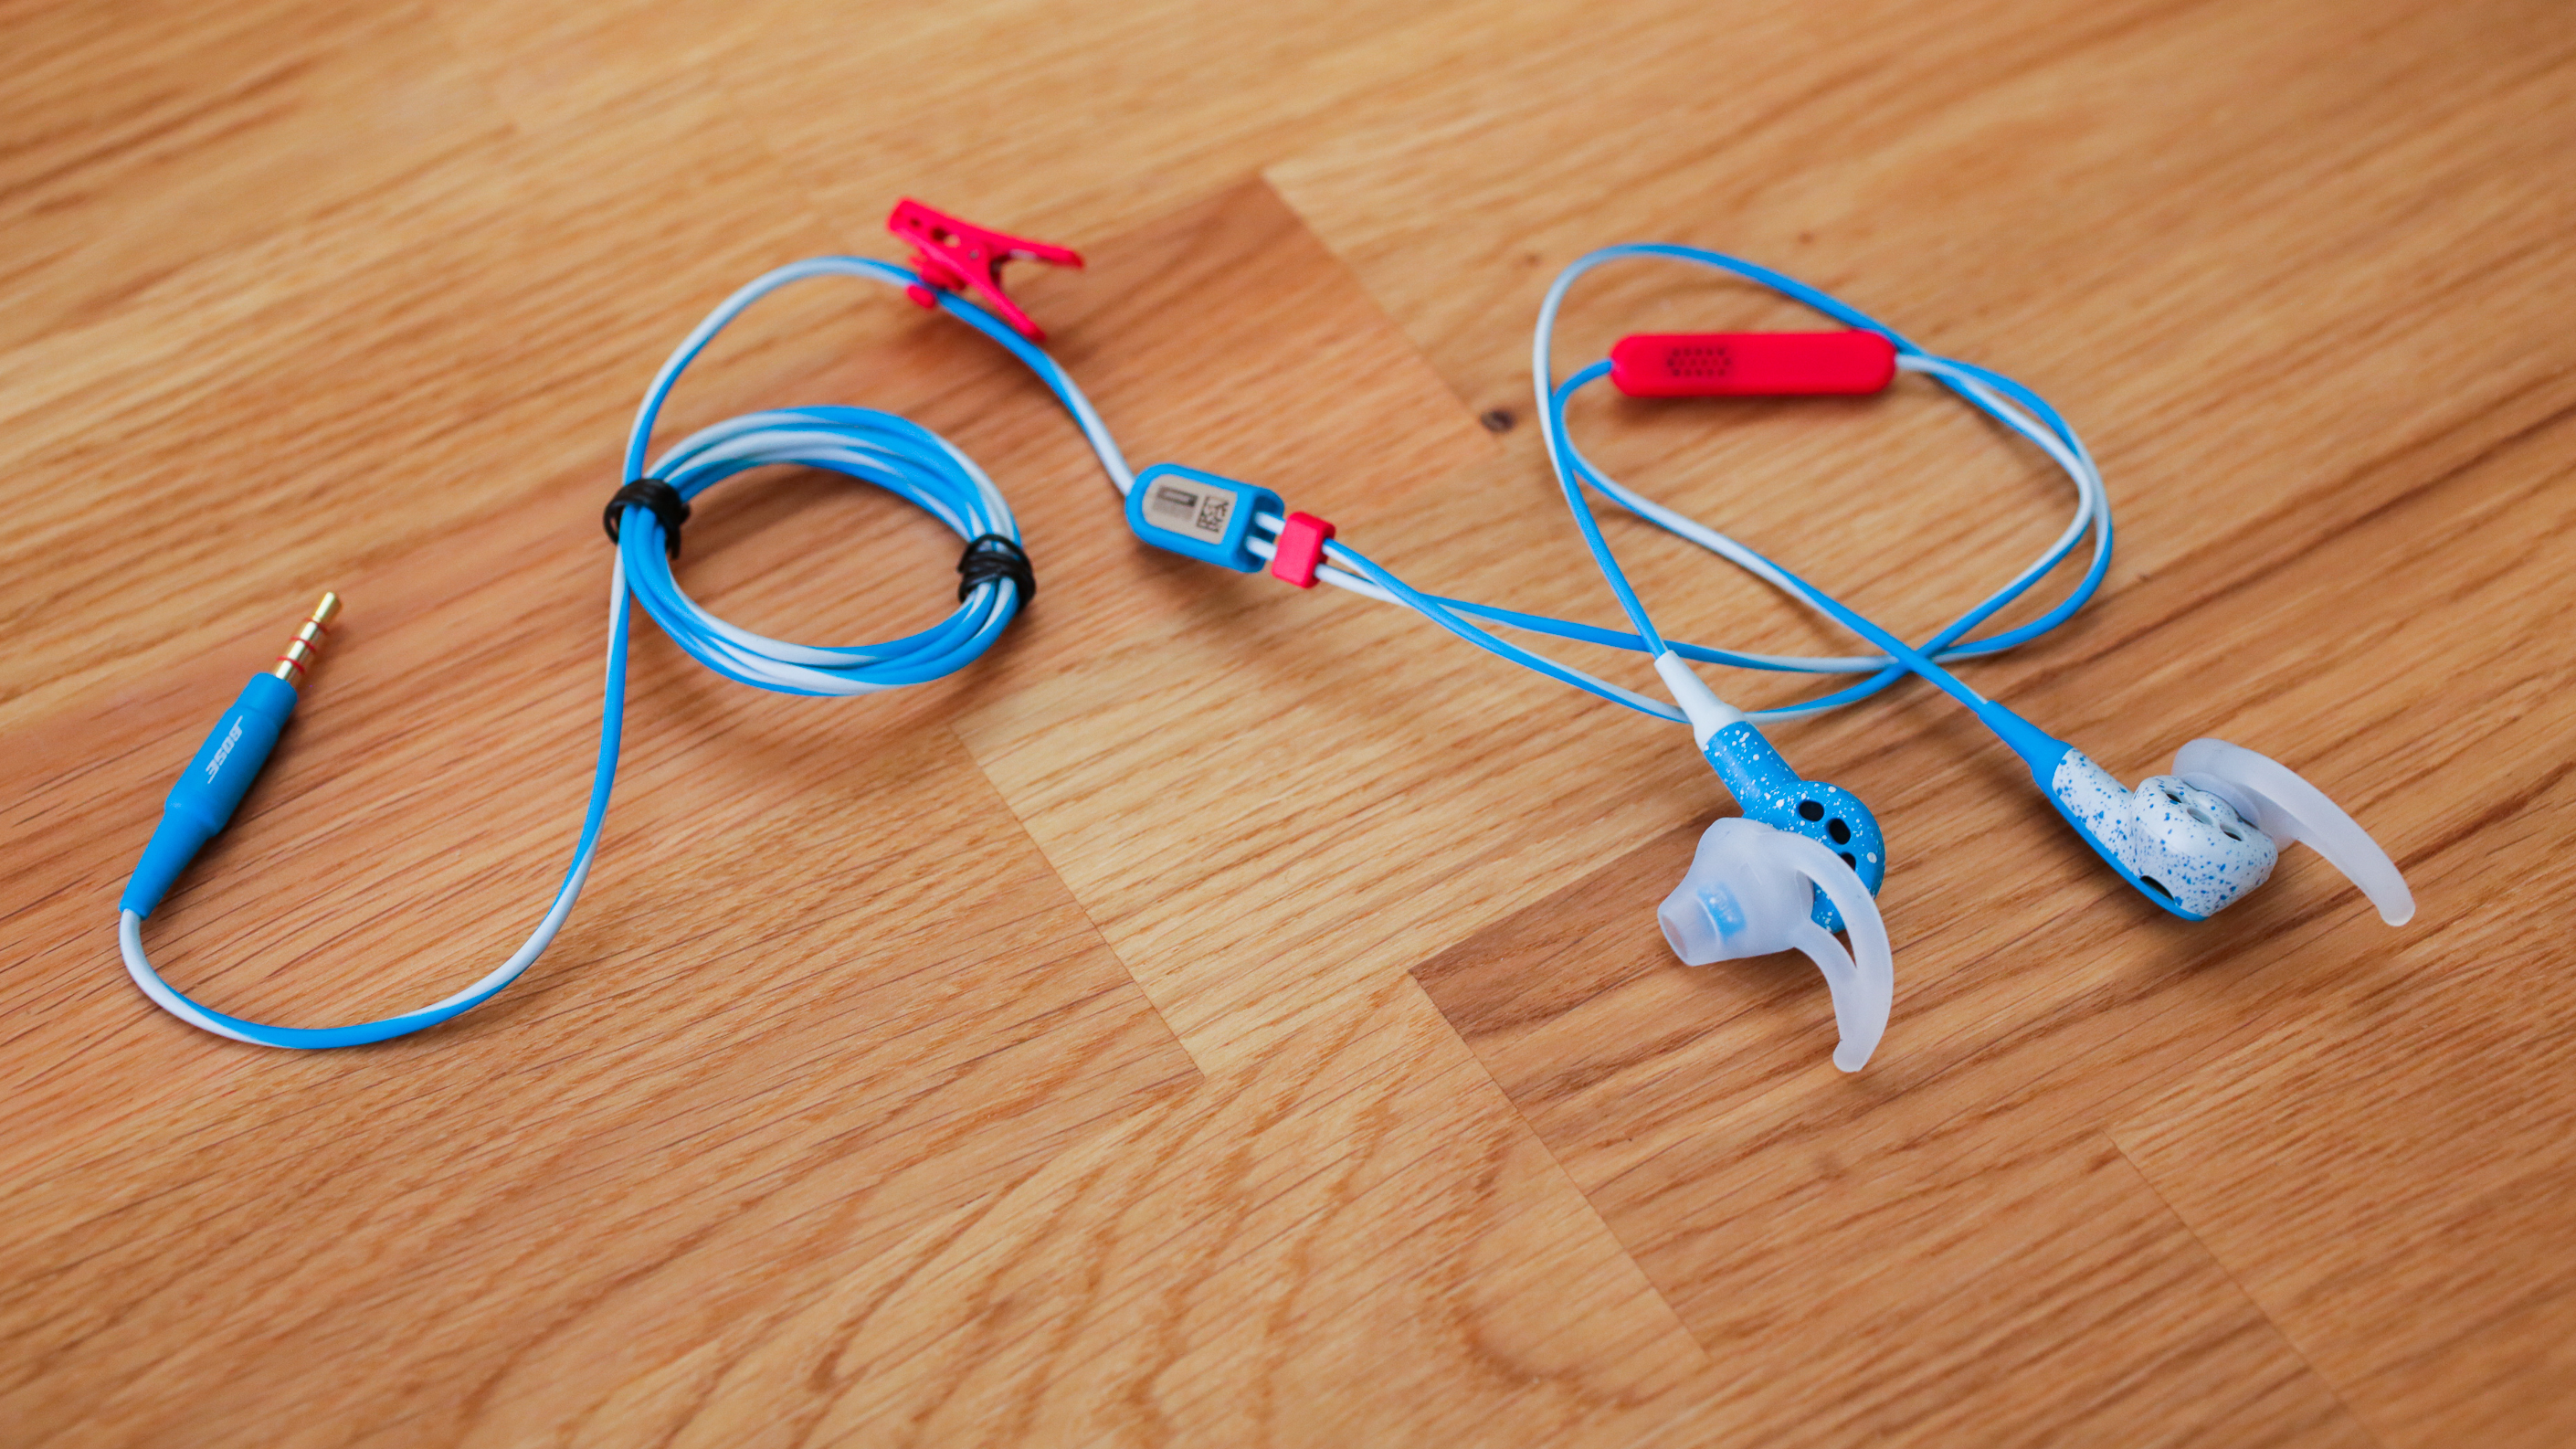 04bose-freestyle-earbuds-product-photos.jpg